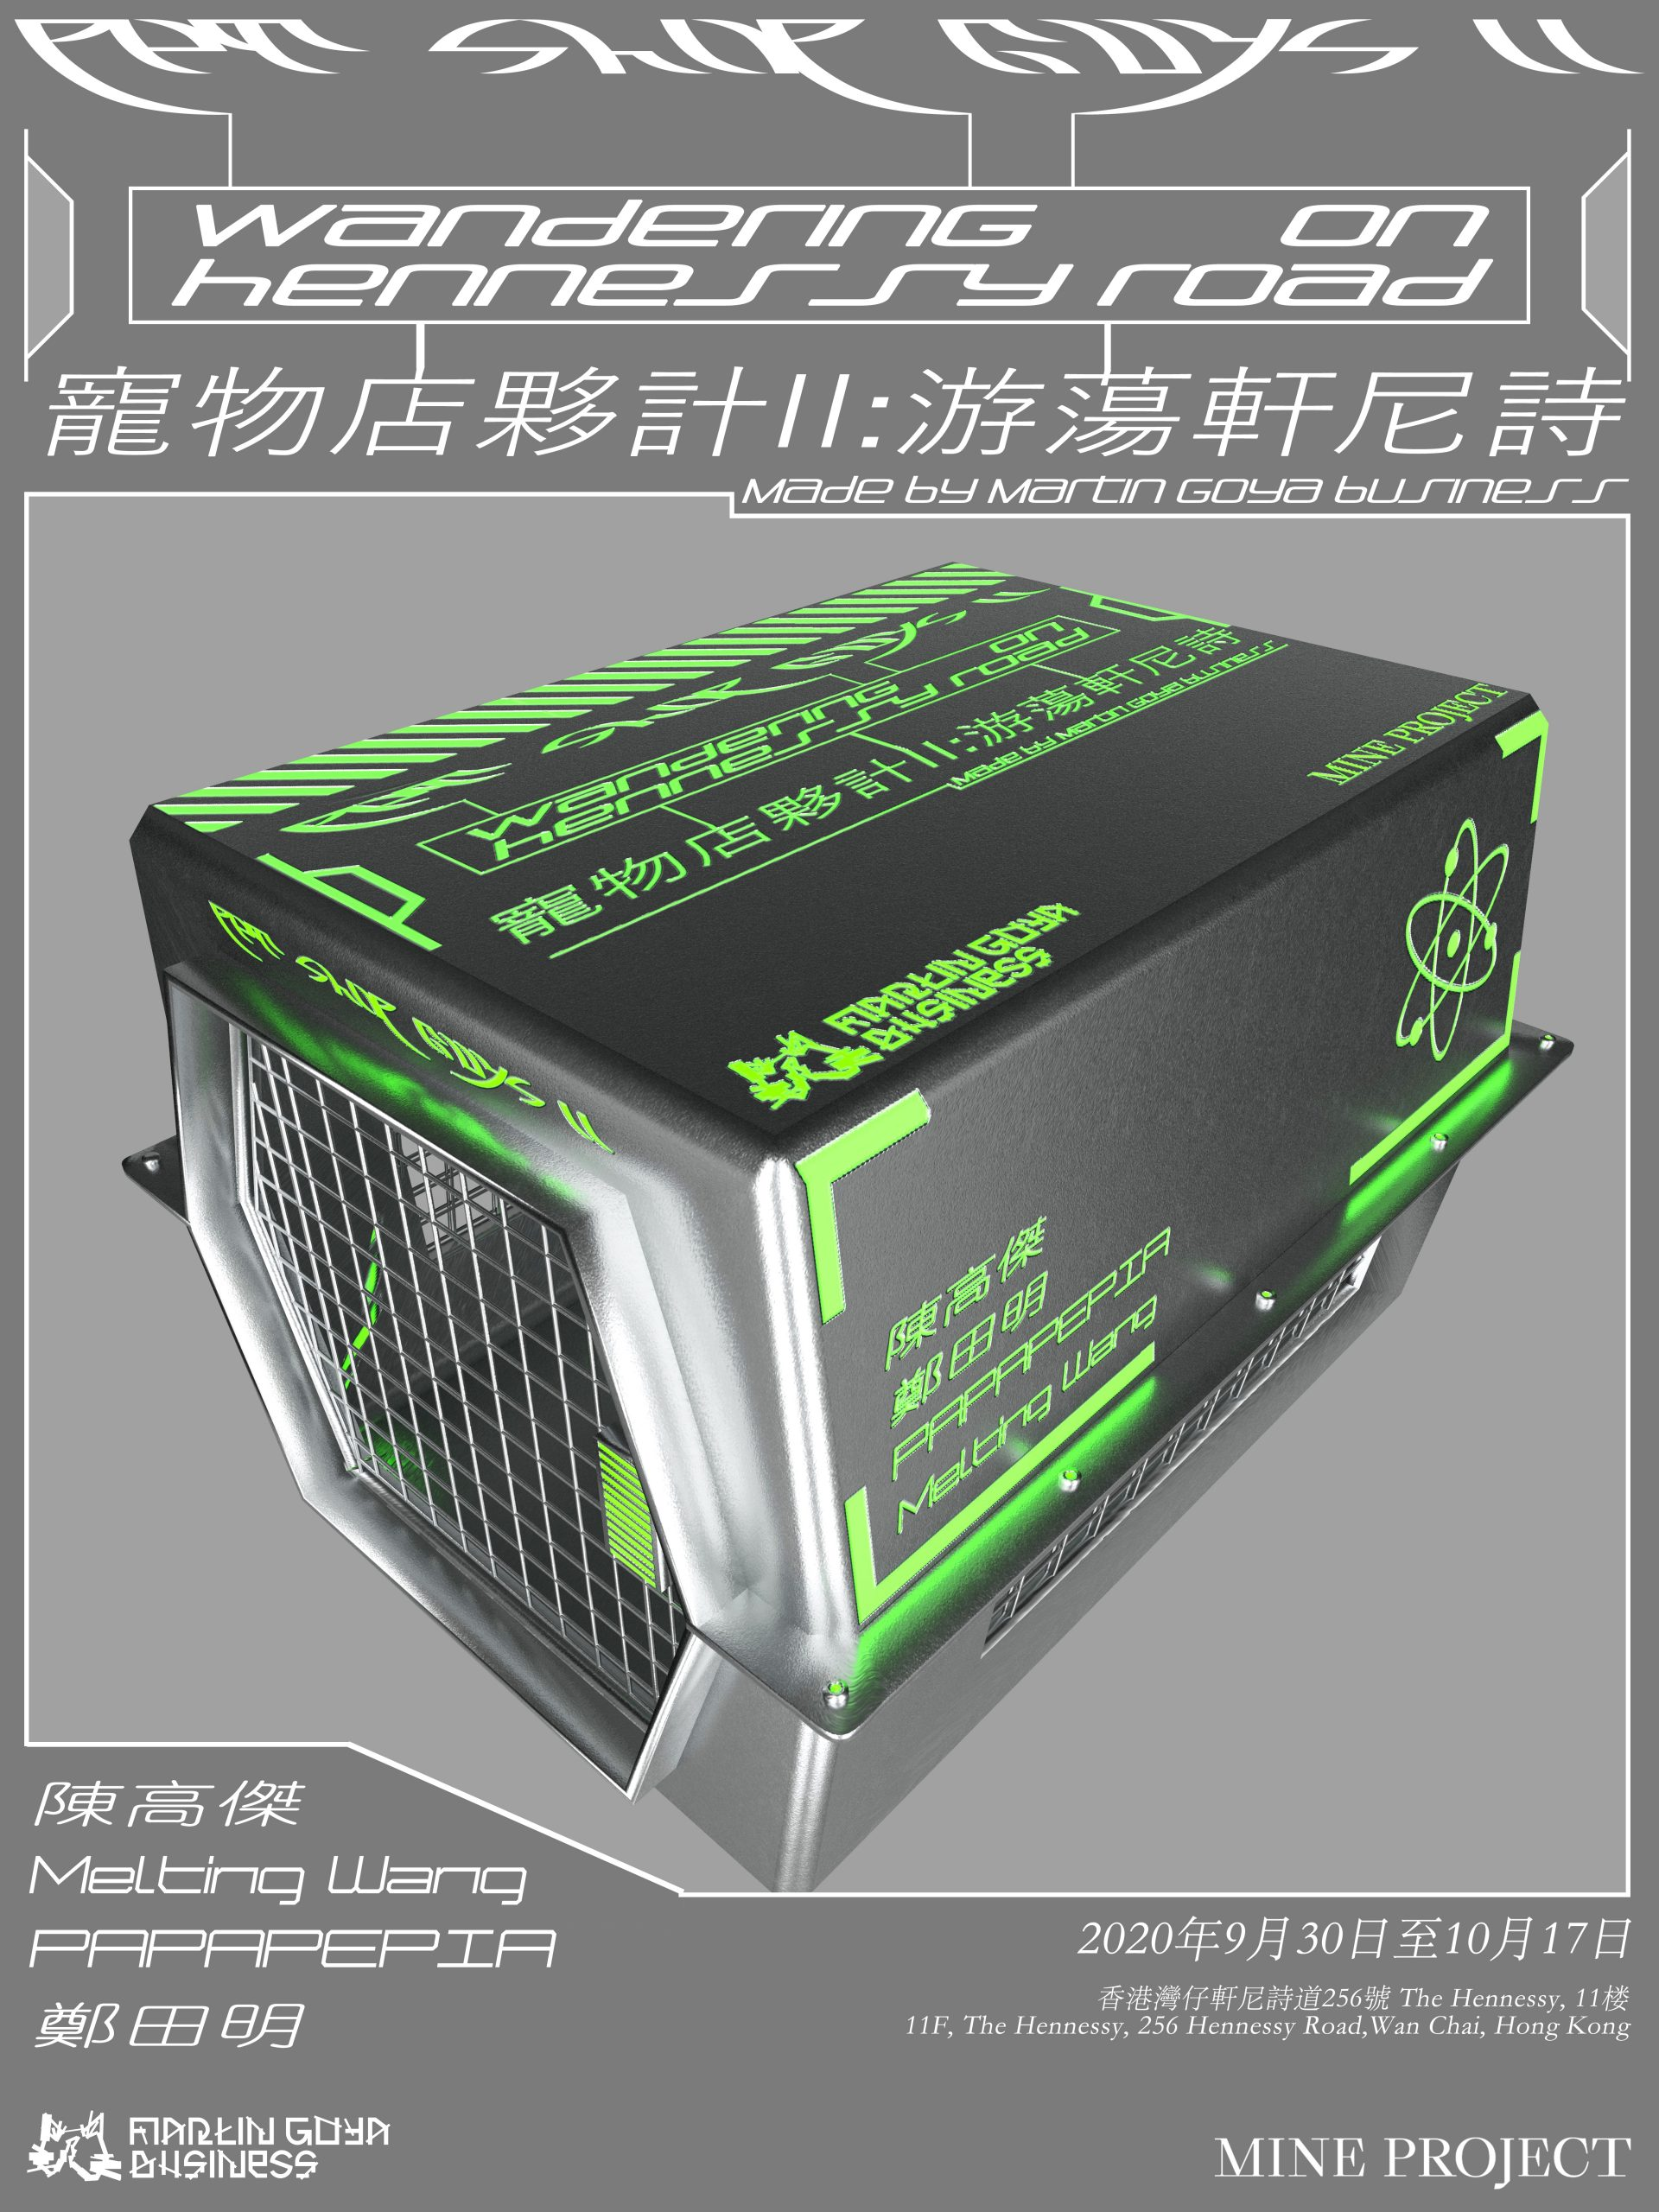 Pet Shop Guys II: Wandering on Hennessy Road 寵物店伙計 II:遊蕩軒尼詩